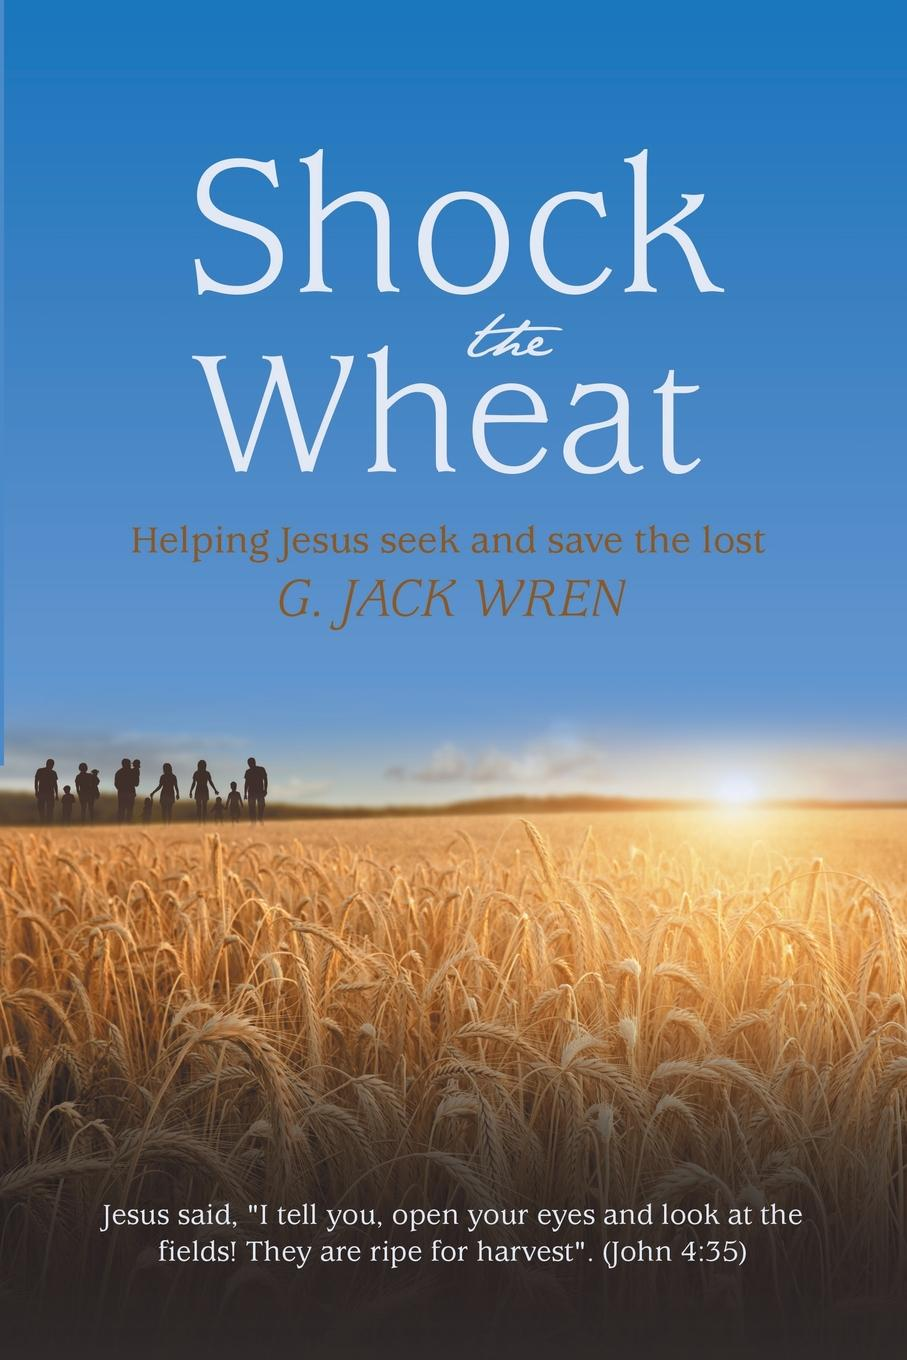 G. Jack Wren Shock the Wheat. Helping Jesus Seek and Save Lost